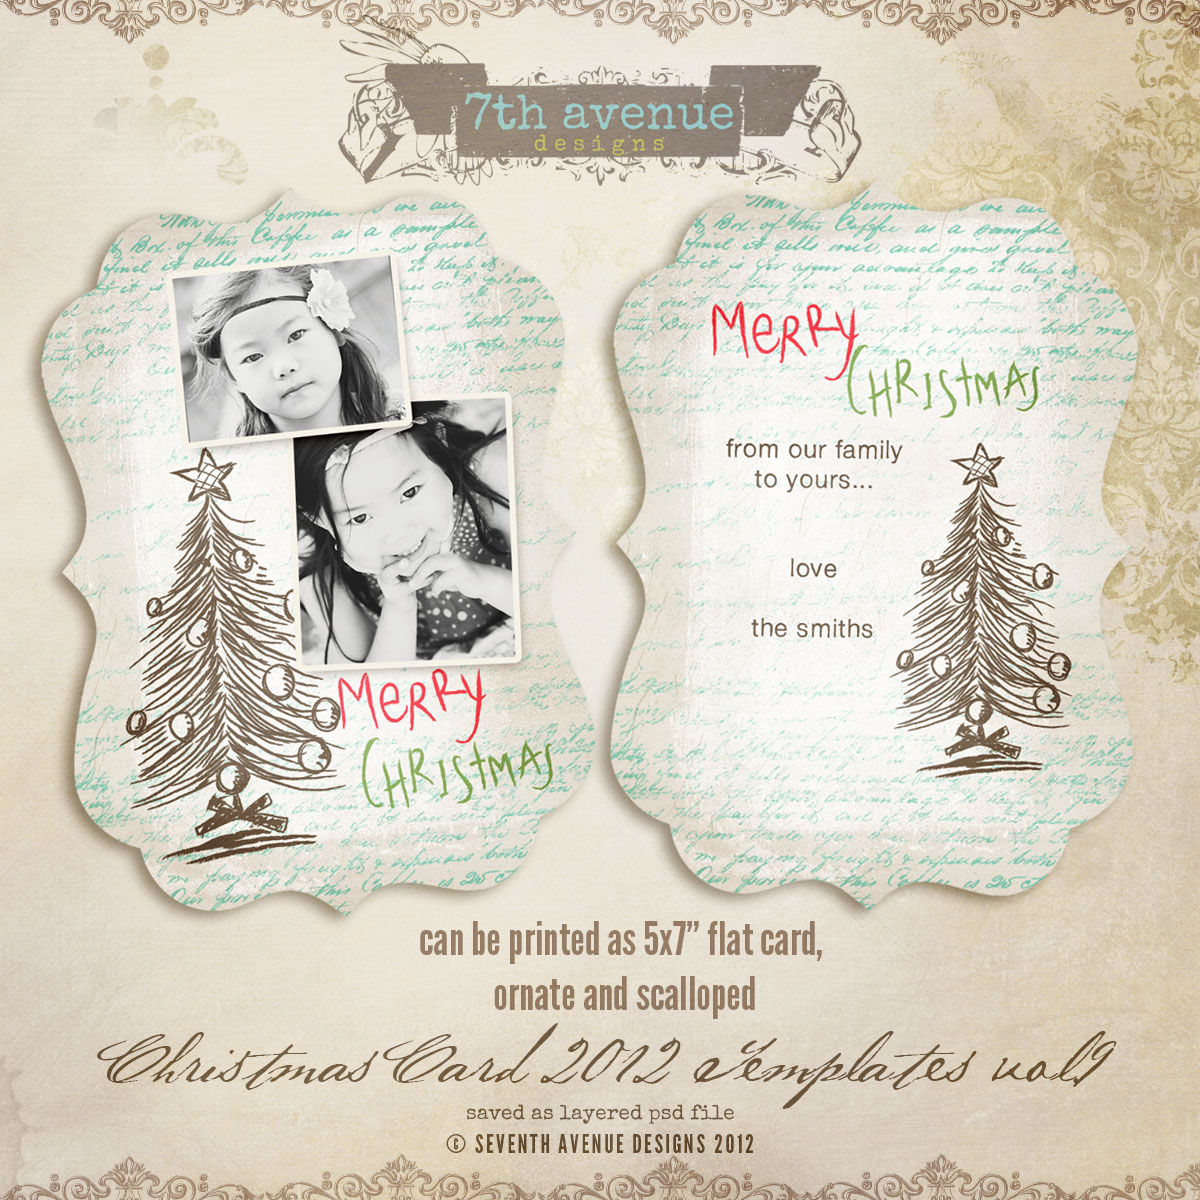 2012 Christmas Card Templates vol.9 -- 5x7 ornate